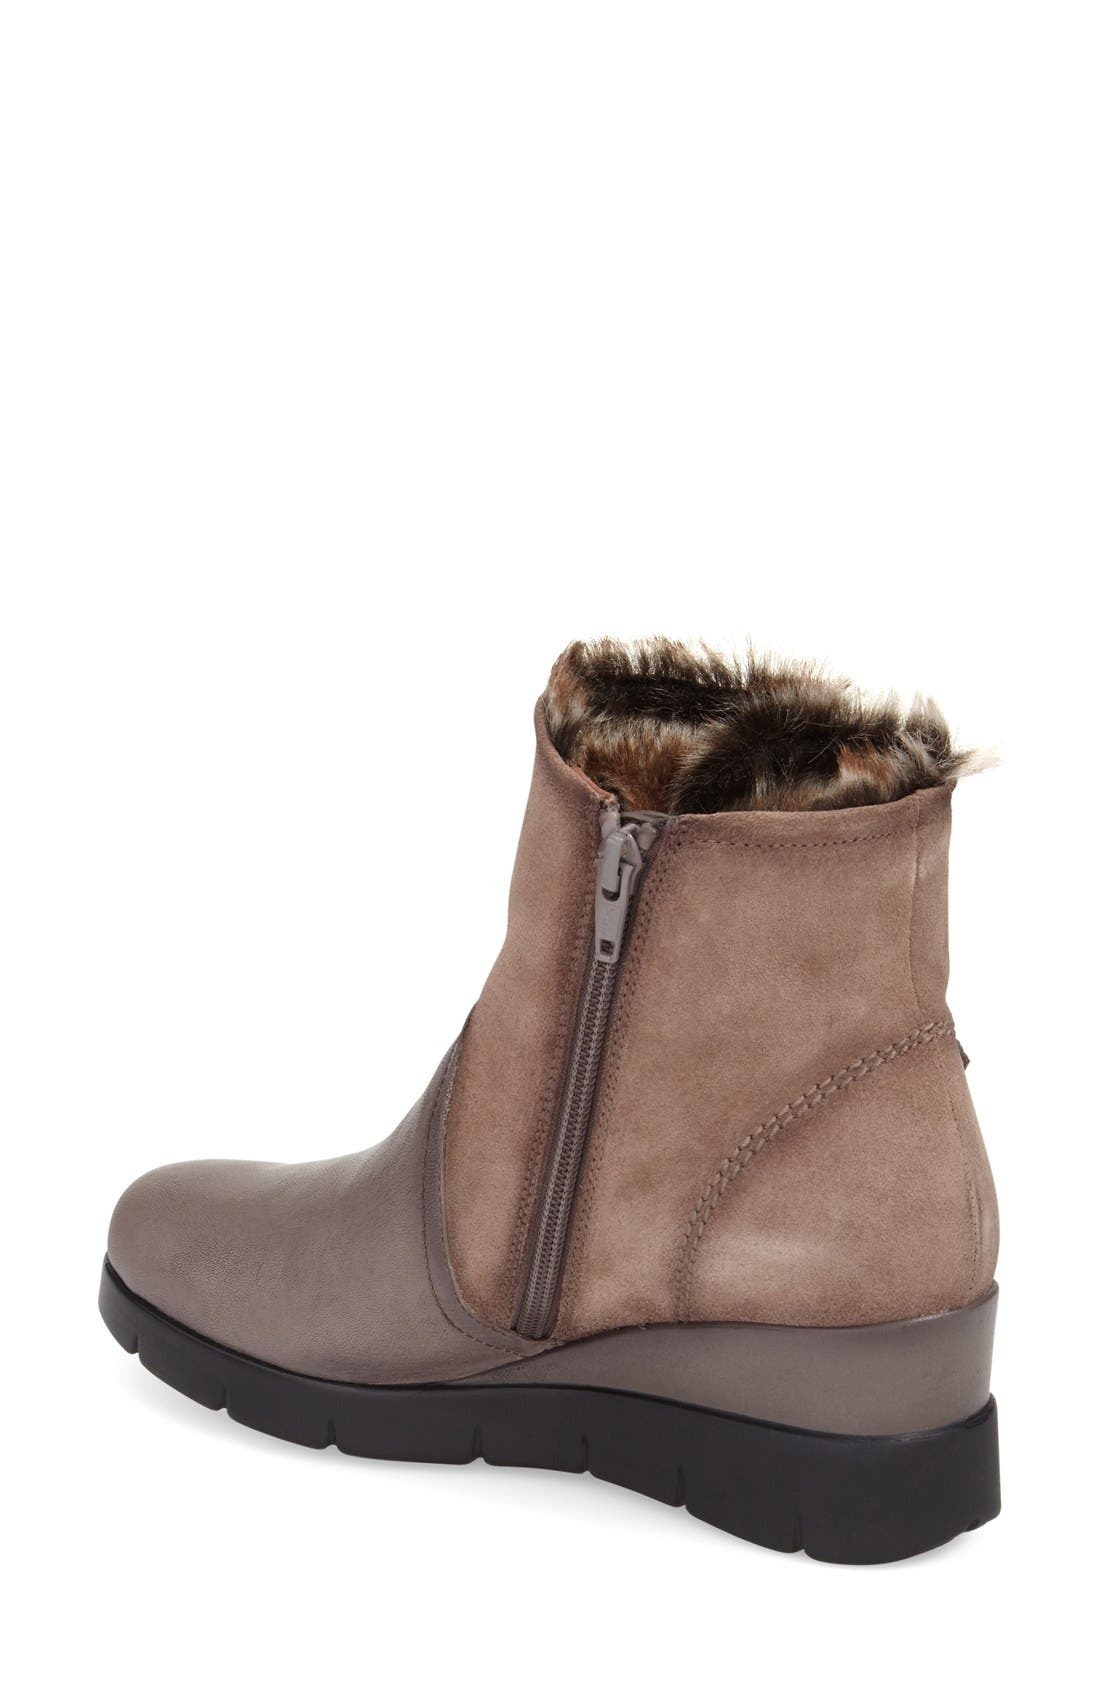 'Langley' Boot,                             Alternate thumbnail 2, color,                             260